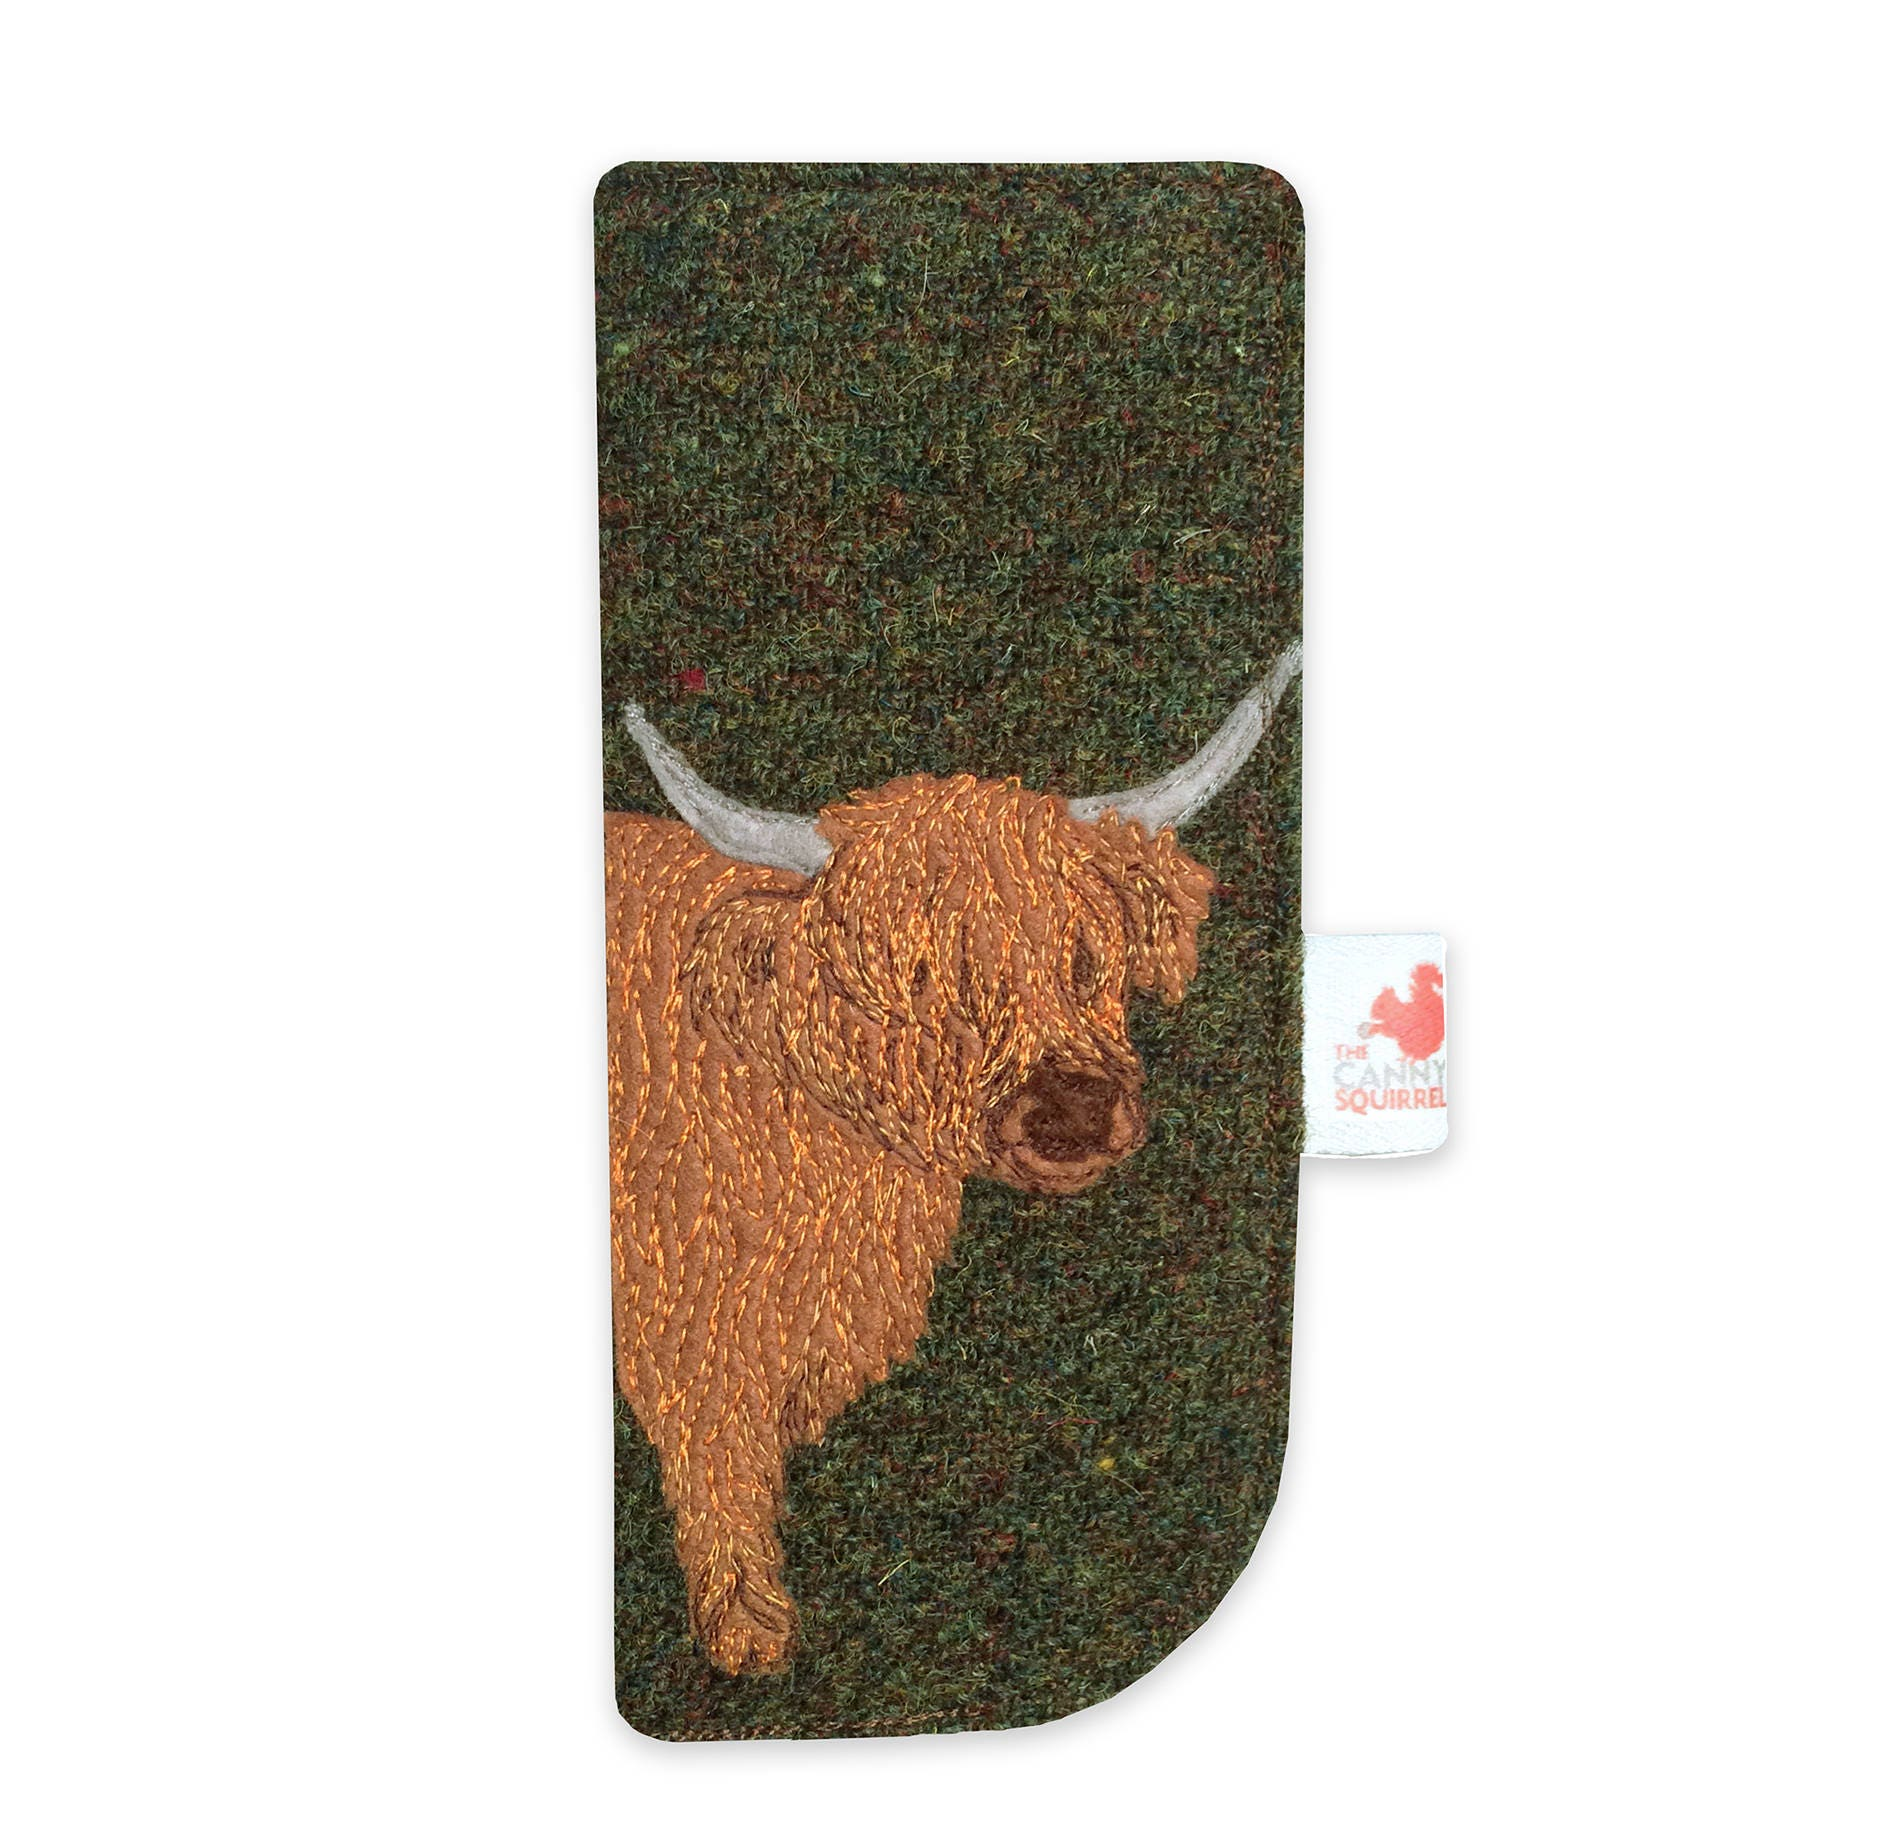 Highland Cow glasses case green Harris Tweed spectacles case sunglasses case